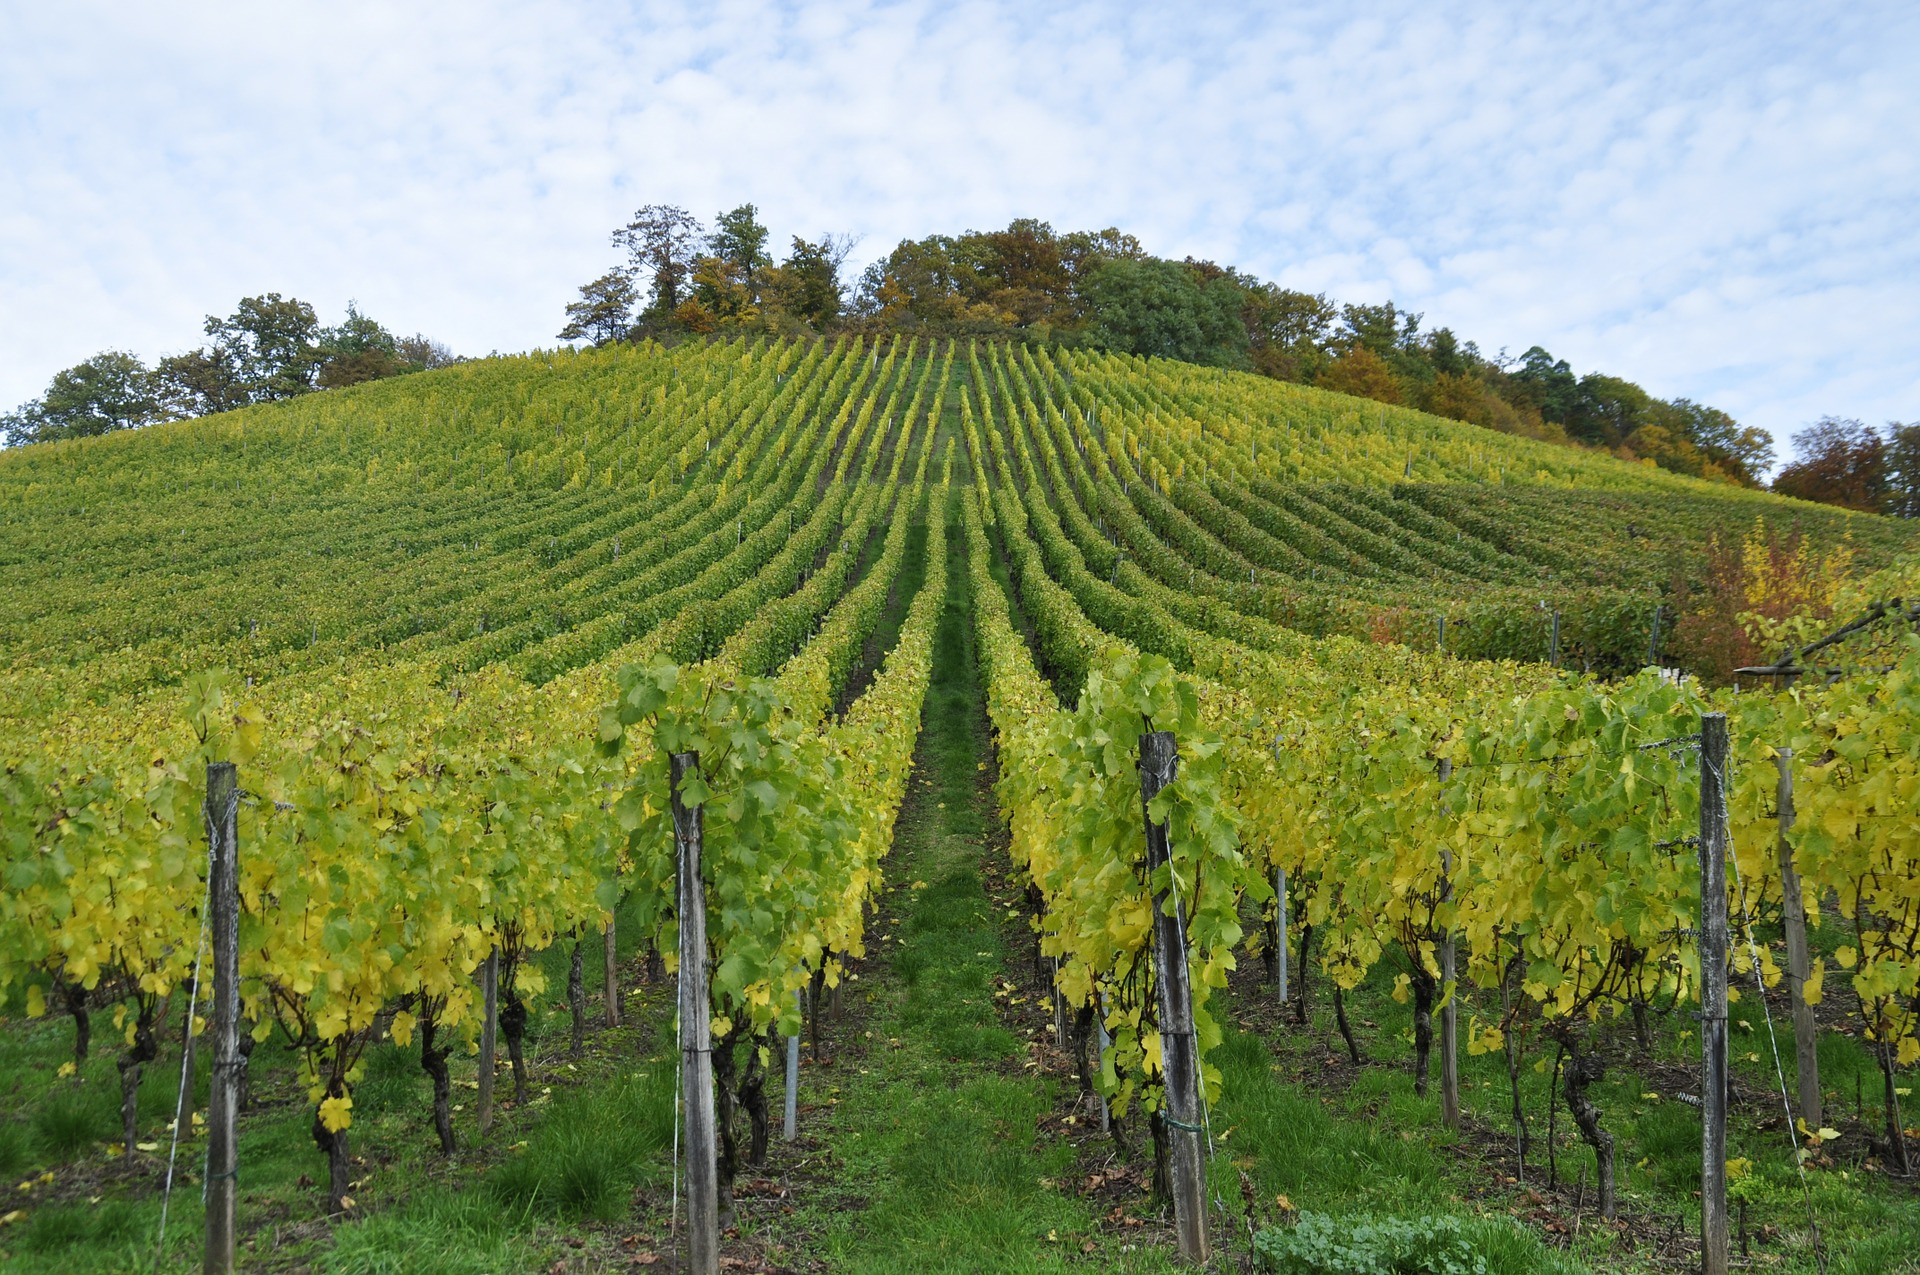 Post-harvest Vineyard Management: preparing vines for resting